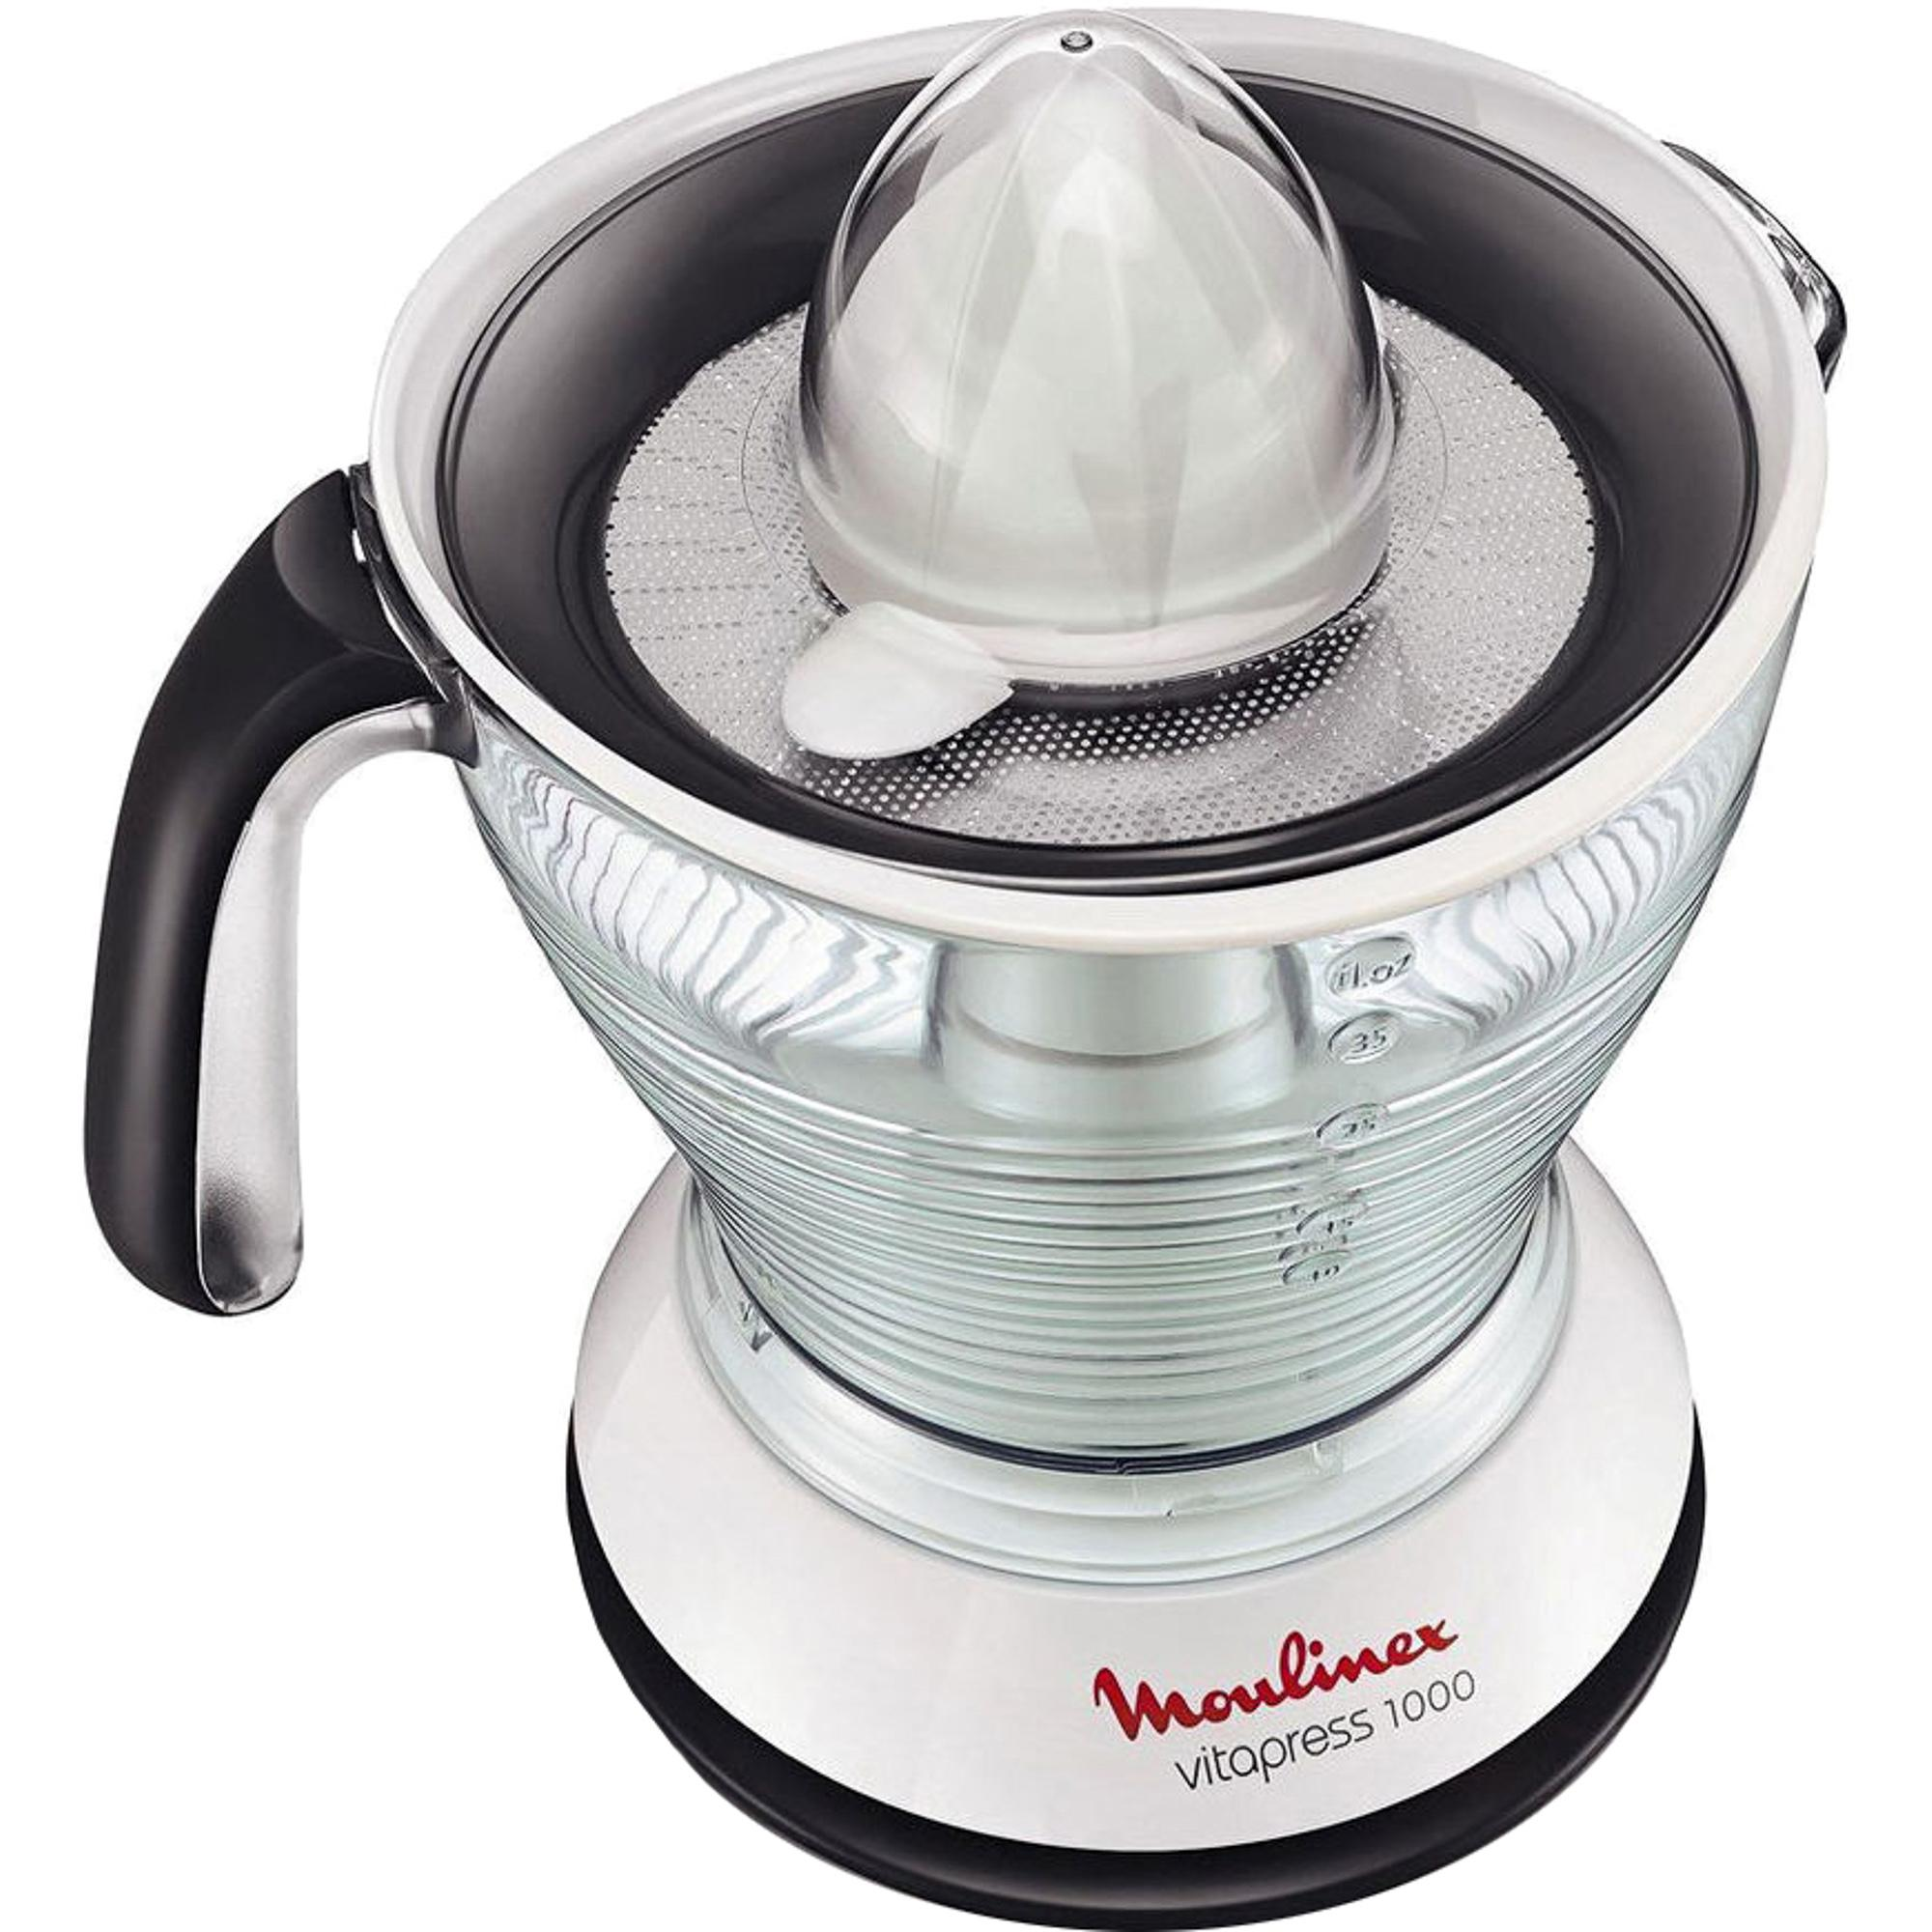 Moulinex PC 302B10 Vitapress 1000